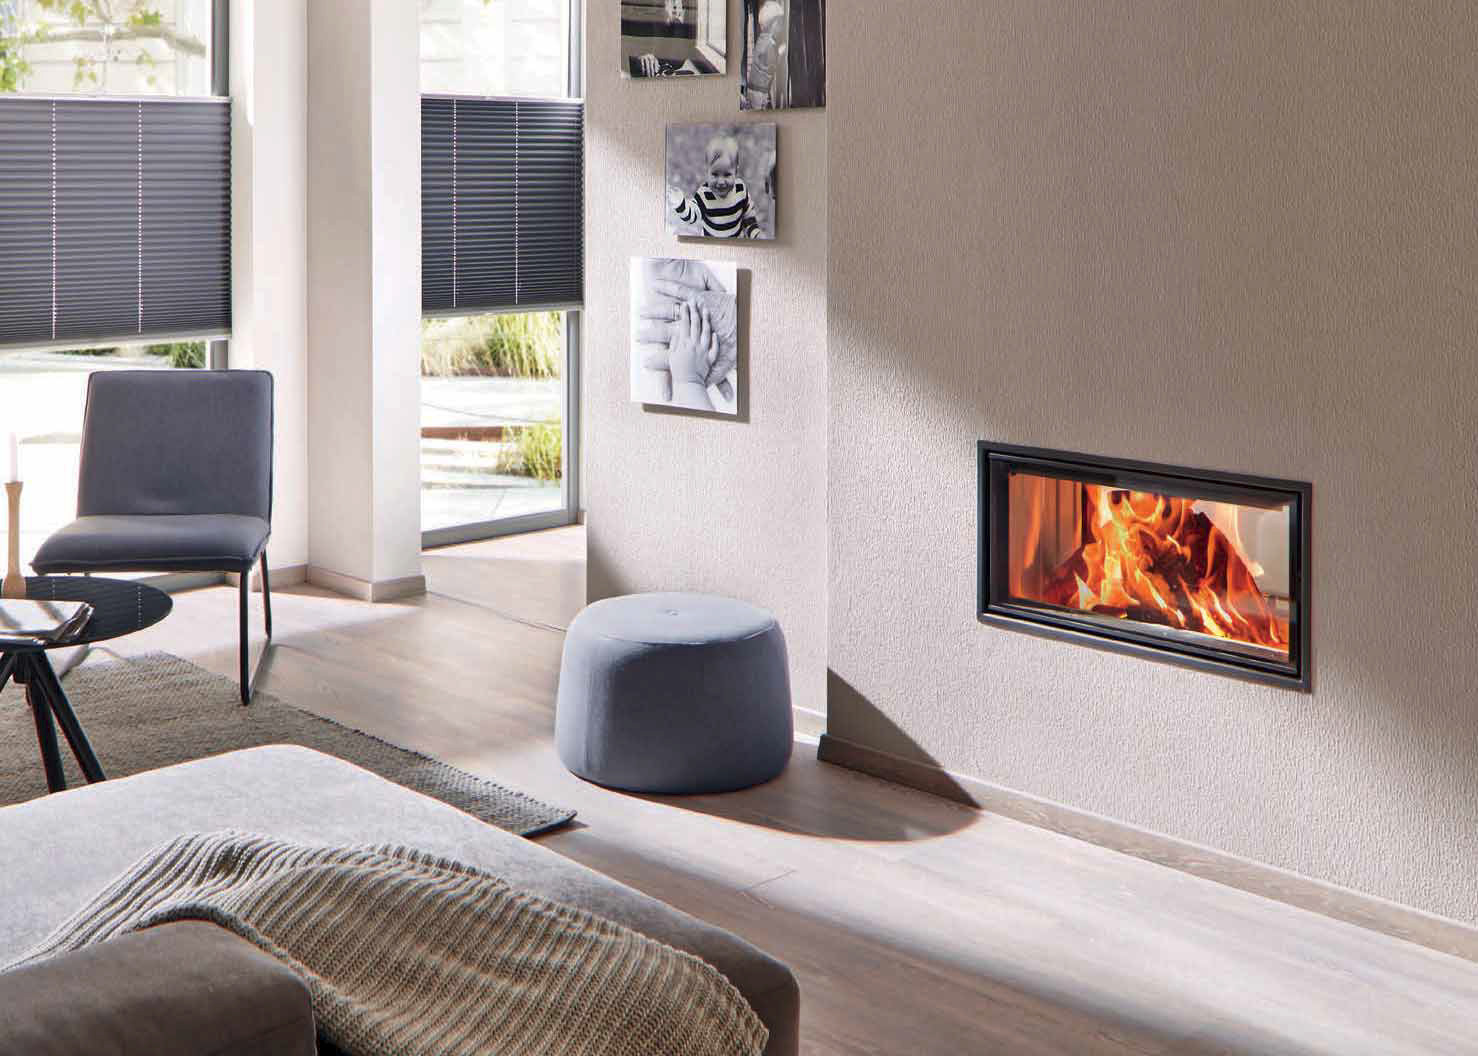 spartherm varia as fdh 2 flames fireplaces banbridge. Black Bedroom Furniture Sets. Home Design Ideas